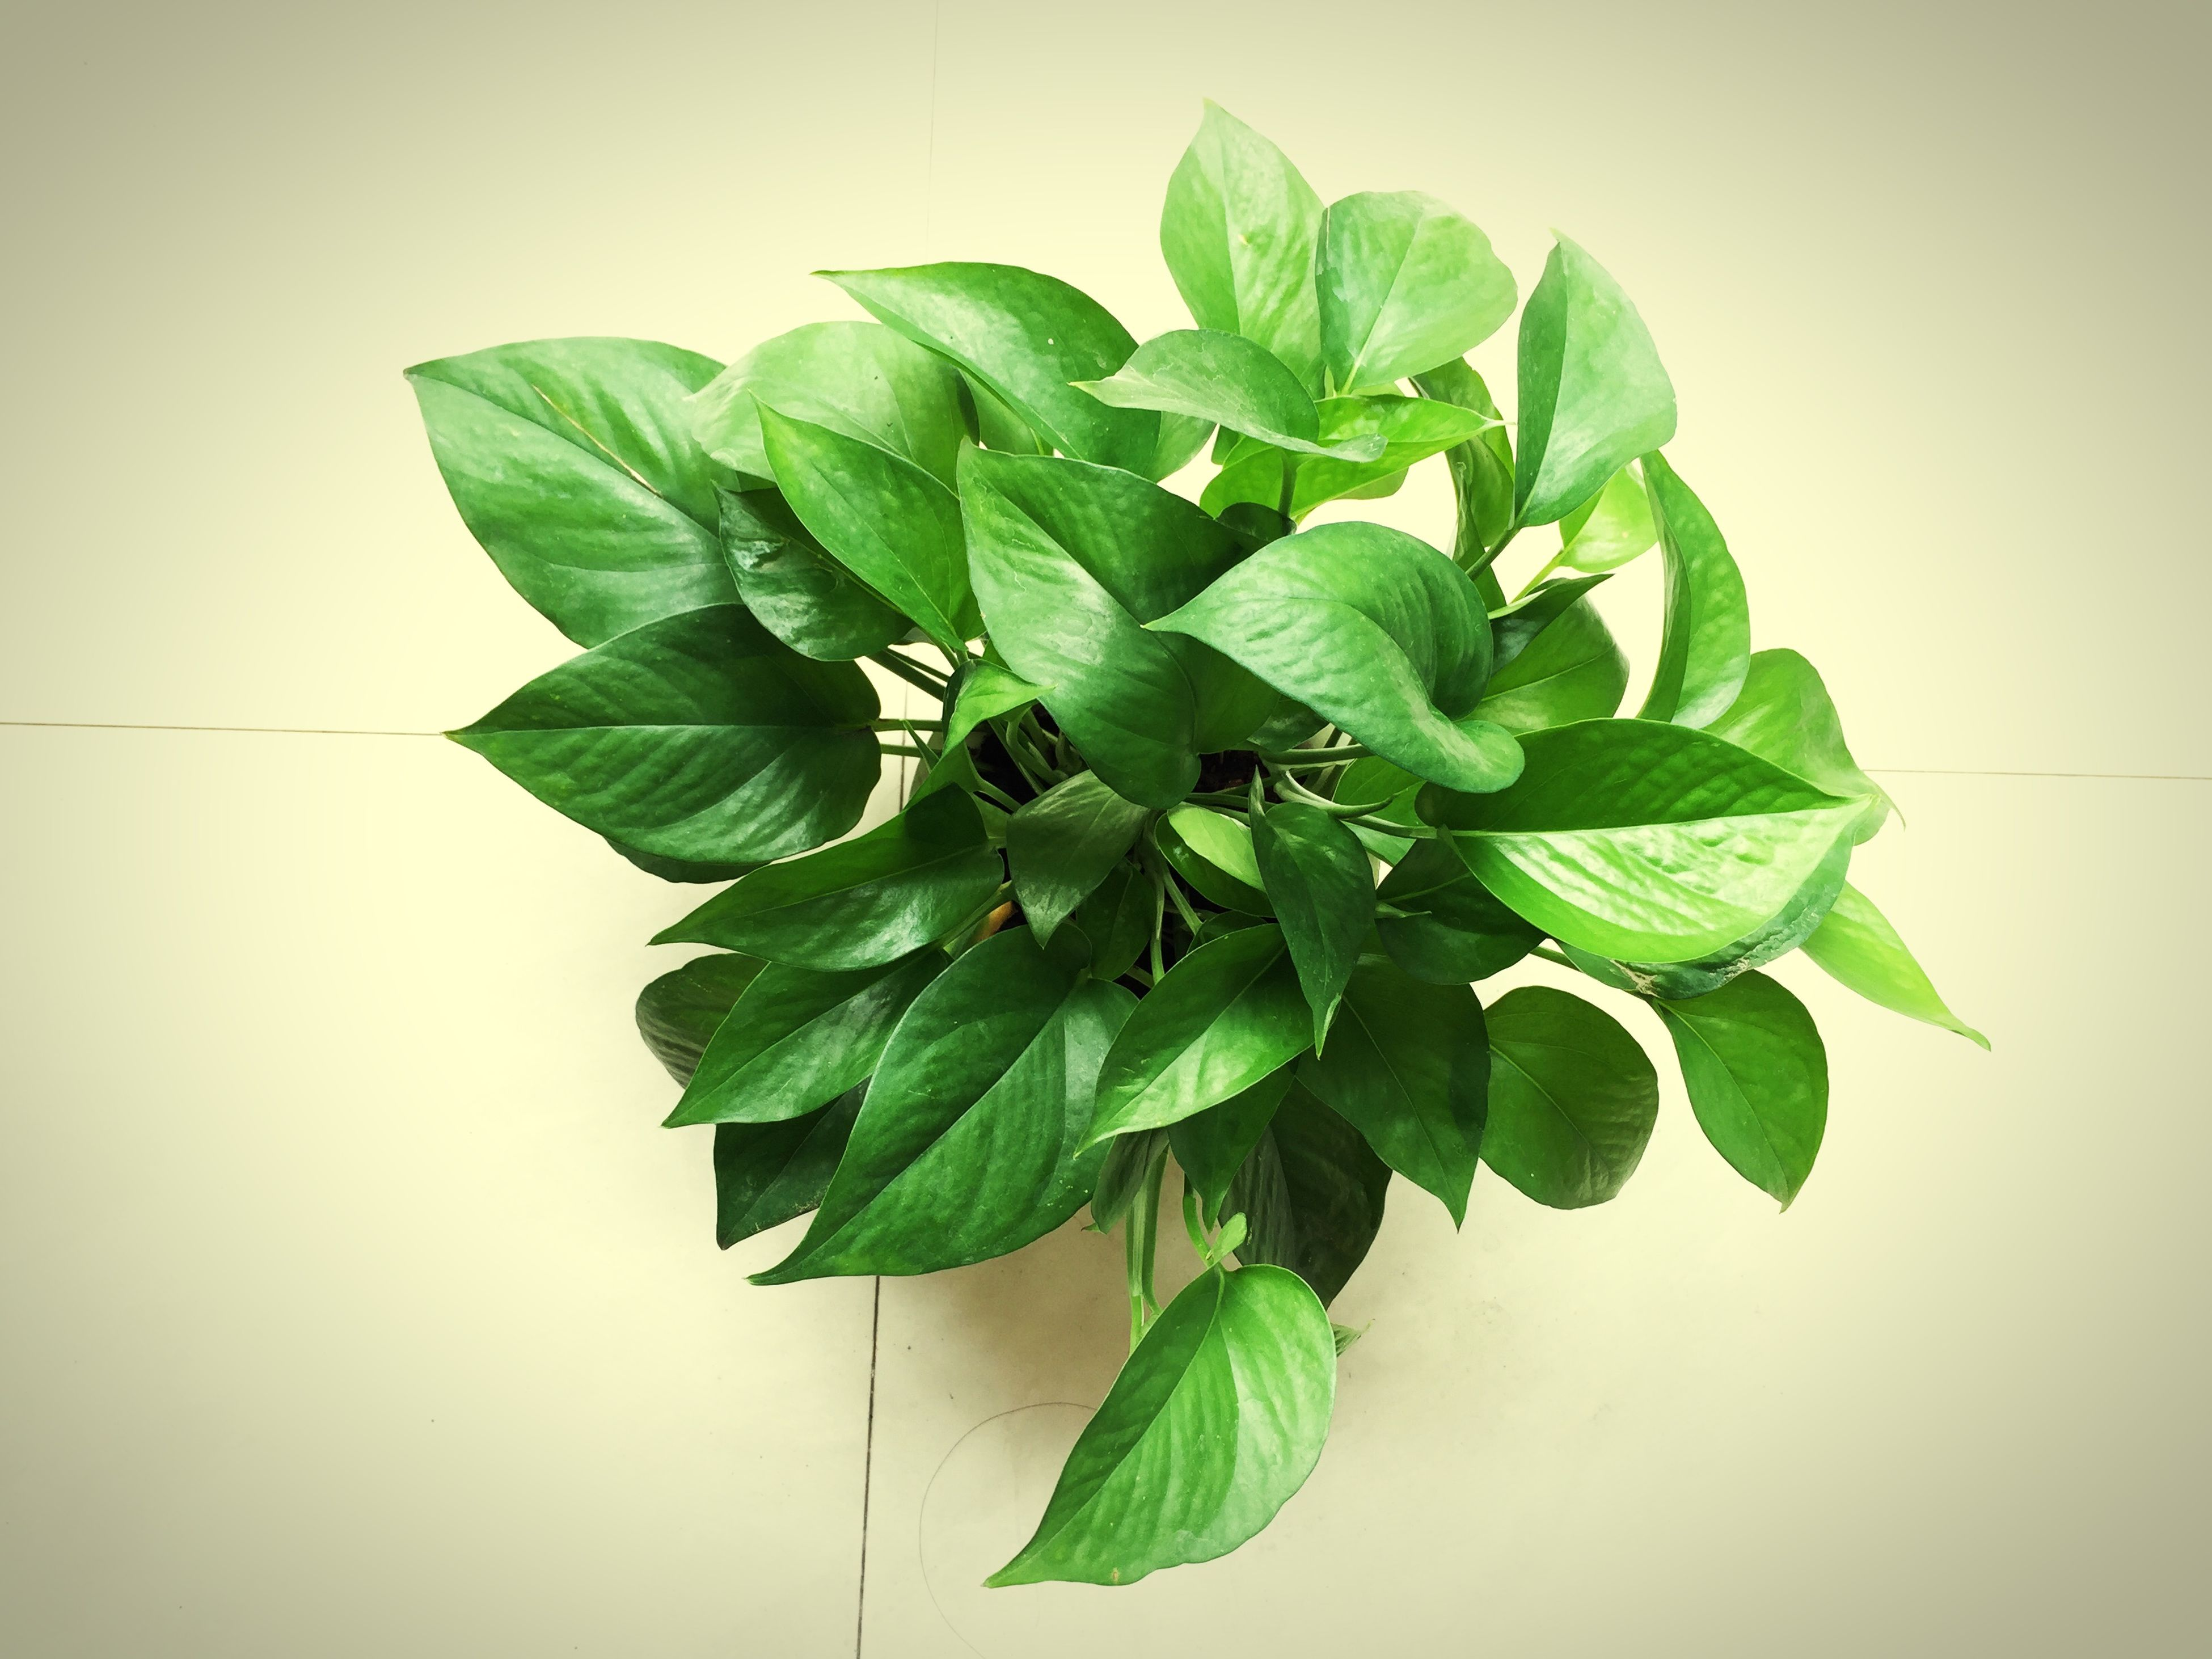 leaf, green color, growth, plant, leaf vein, white background, close-up, studio shot, freshness, nature, stem, green, leaves, fragility, beauty in nature, potted plant, no people, botany, indoors, wall - building feature